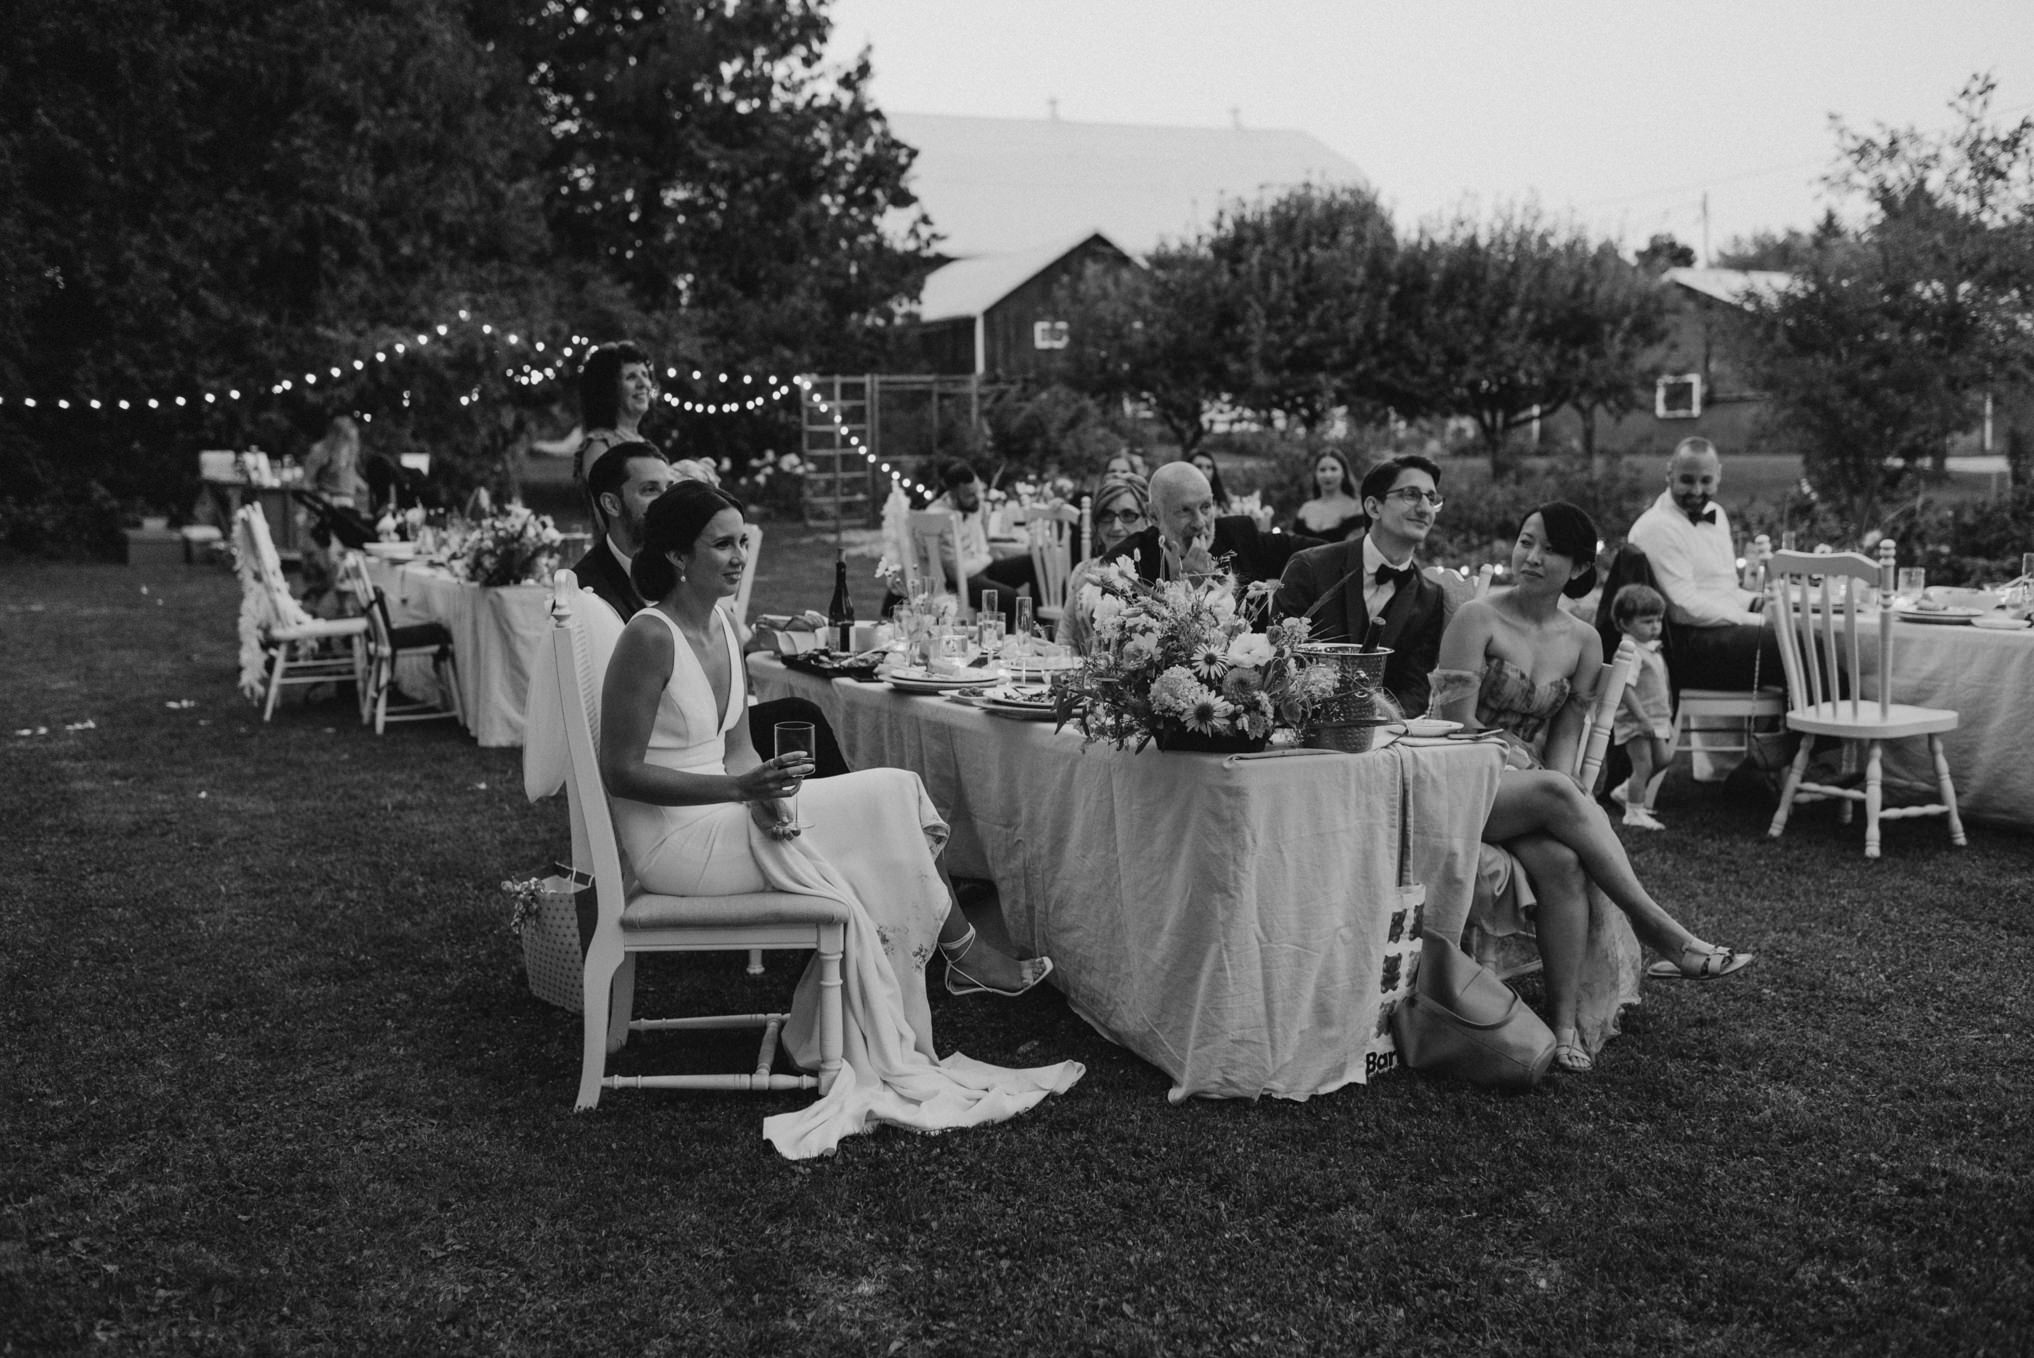 guests listening to speeches at wedding, black and white